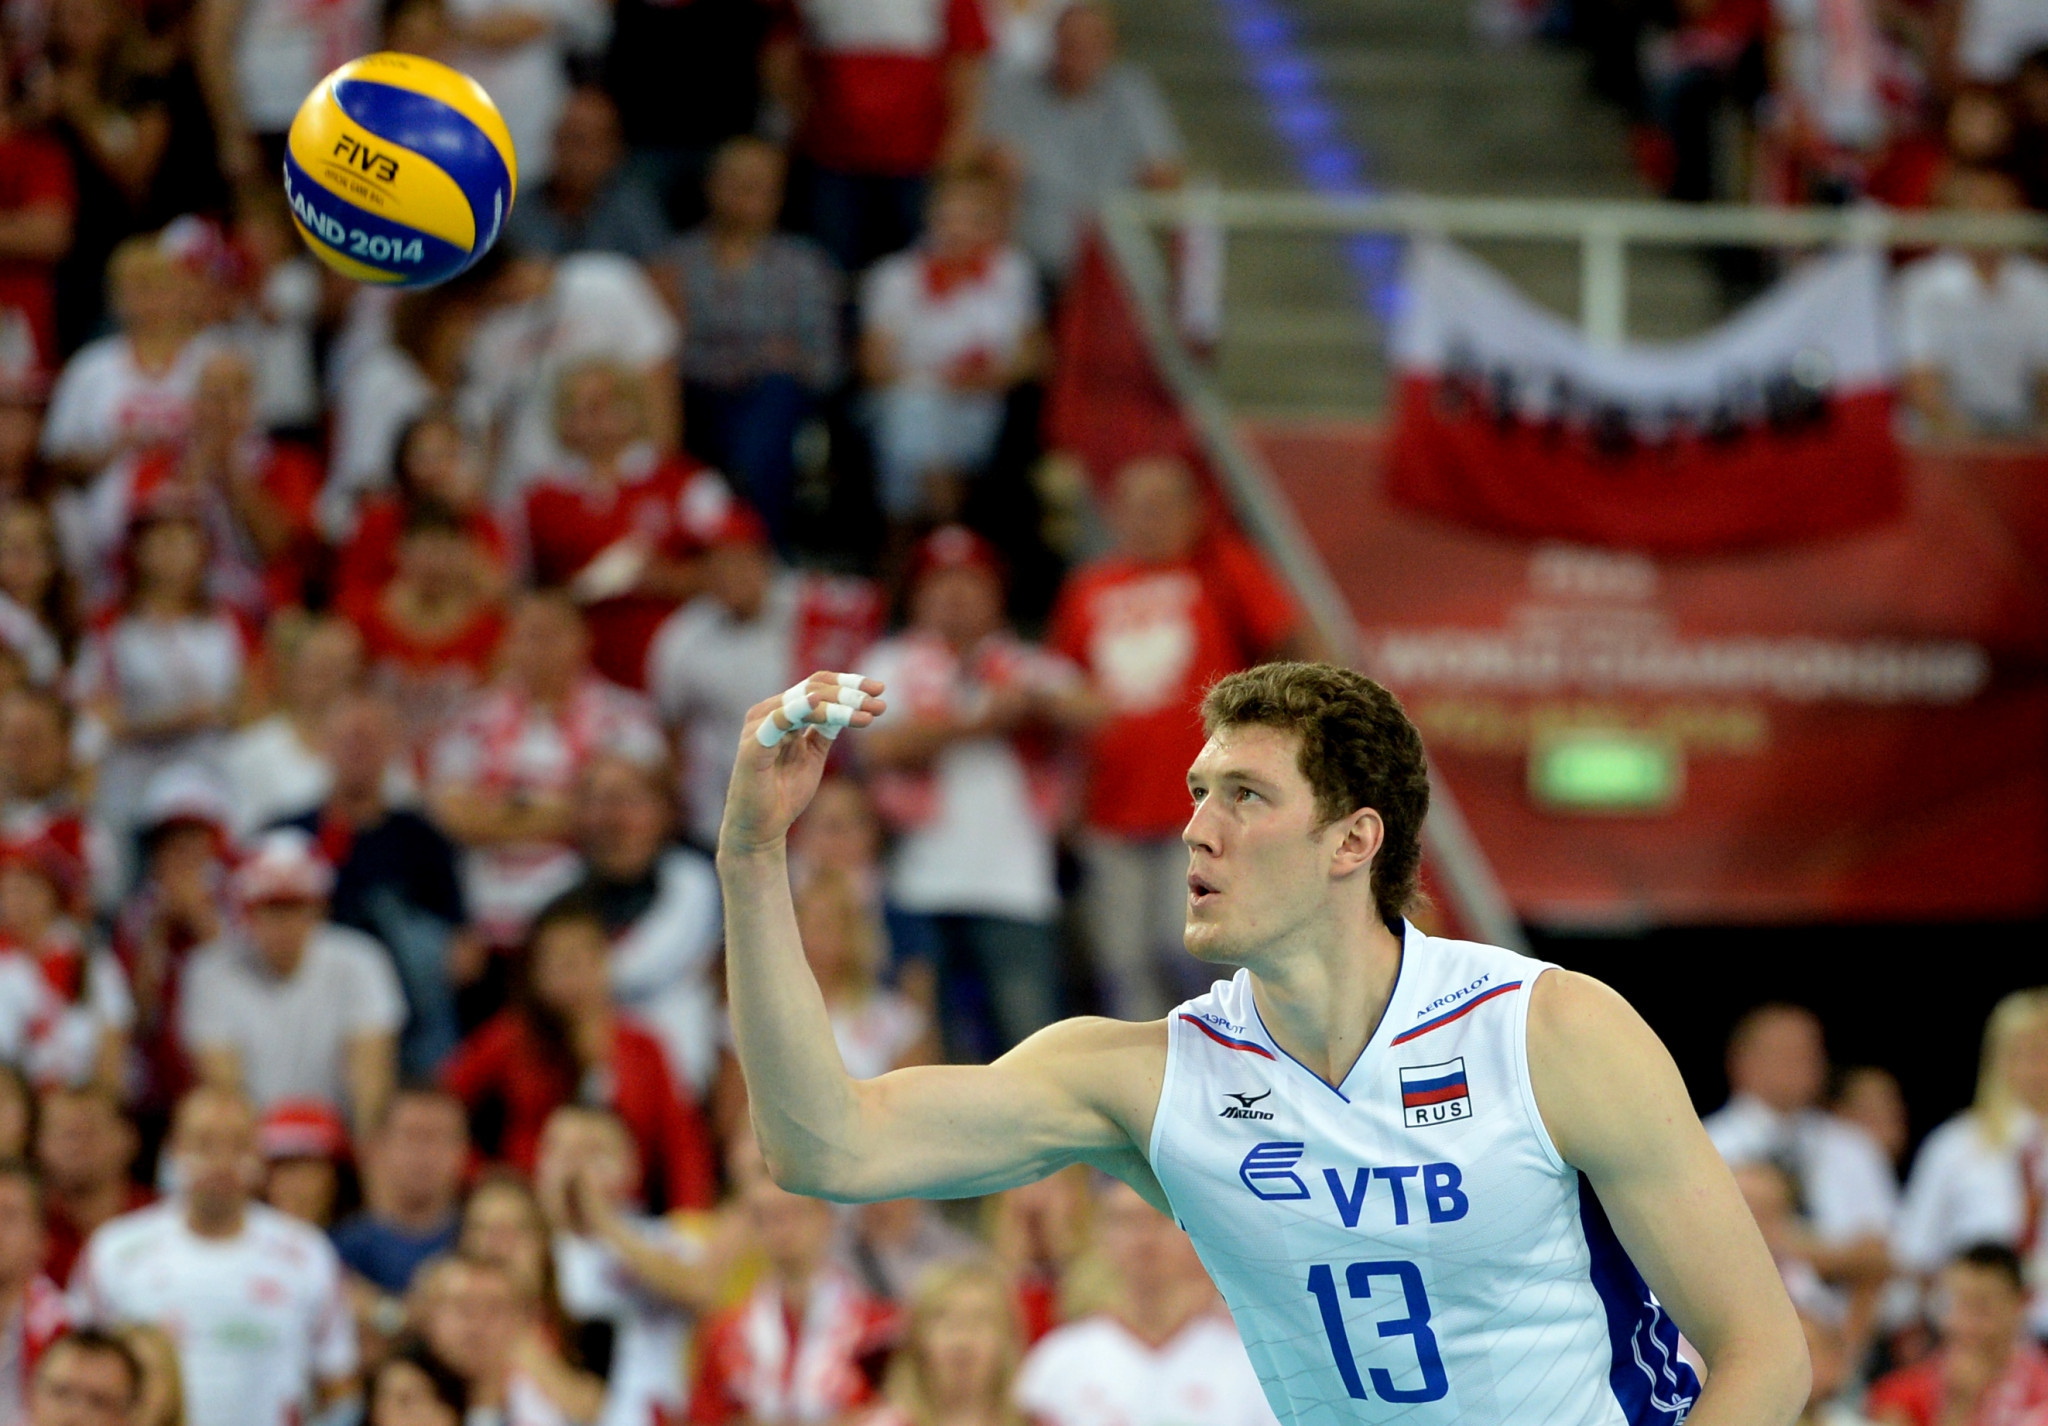 Olympic volleyball champion Muserskiy accepts doping ban but Russia will not lose titles